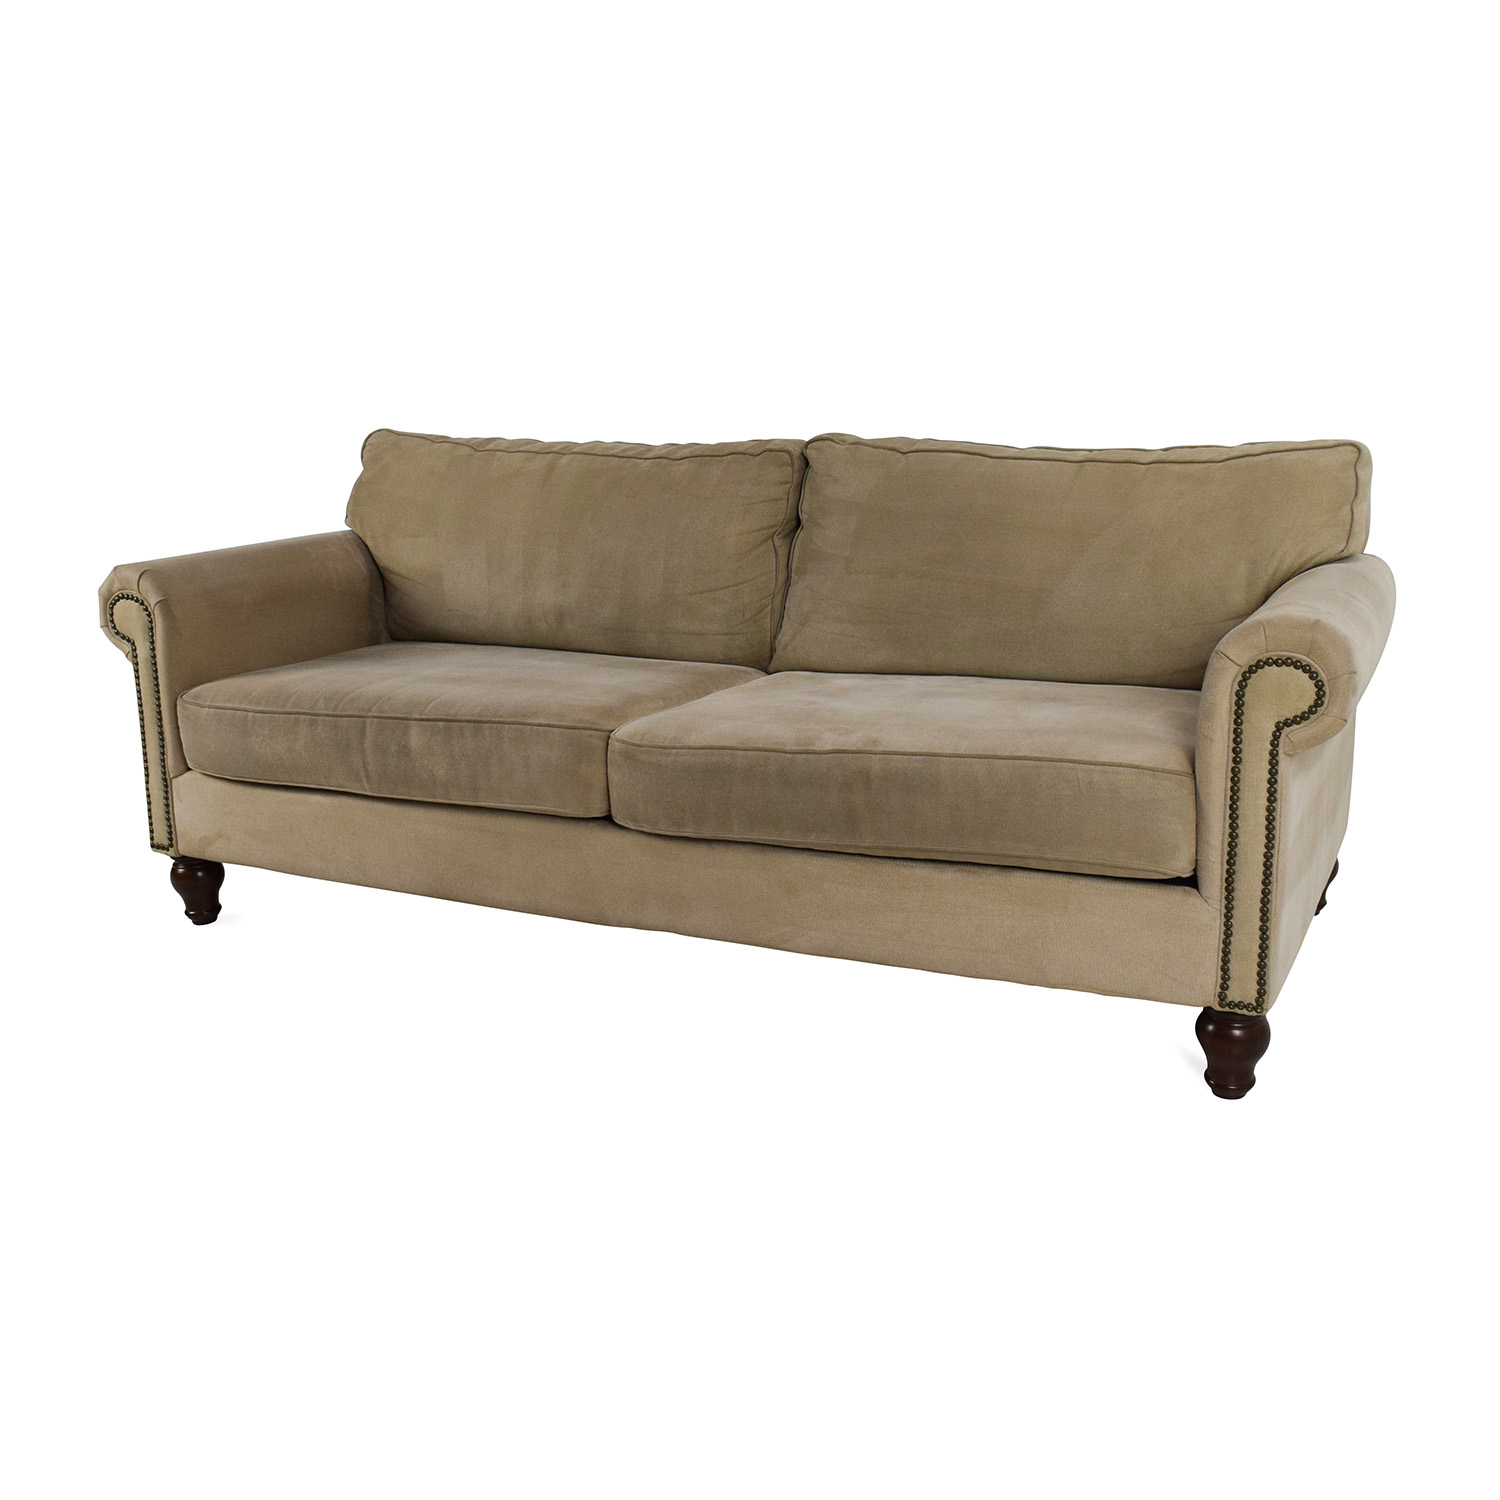 Pier one alton sleeper sofa reviews refil sofa for Sofa 1 80 largura